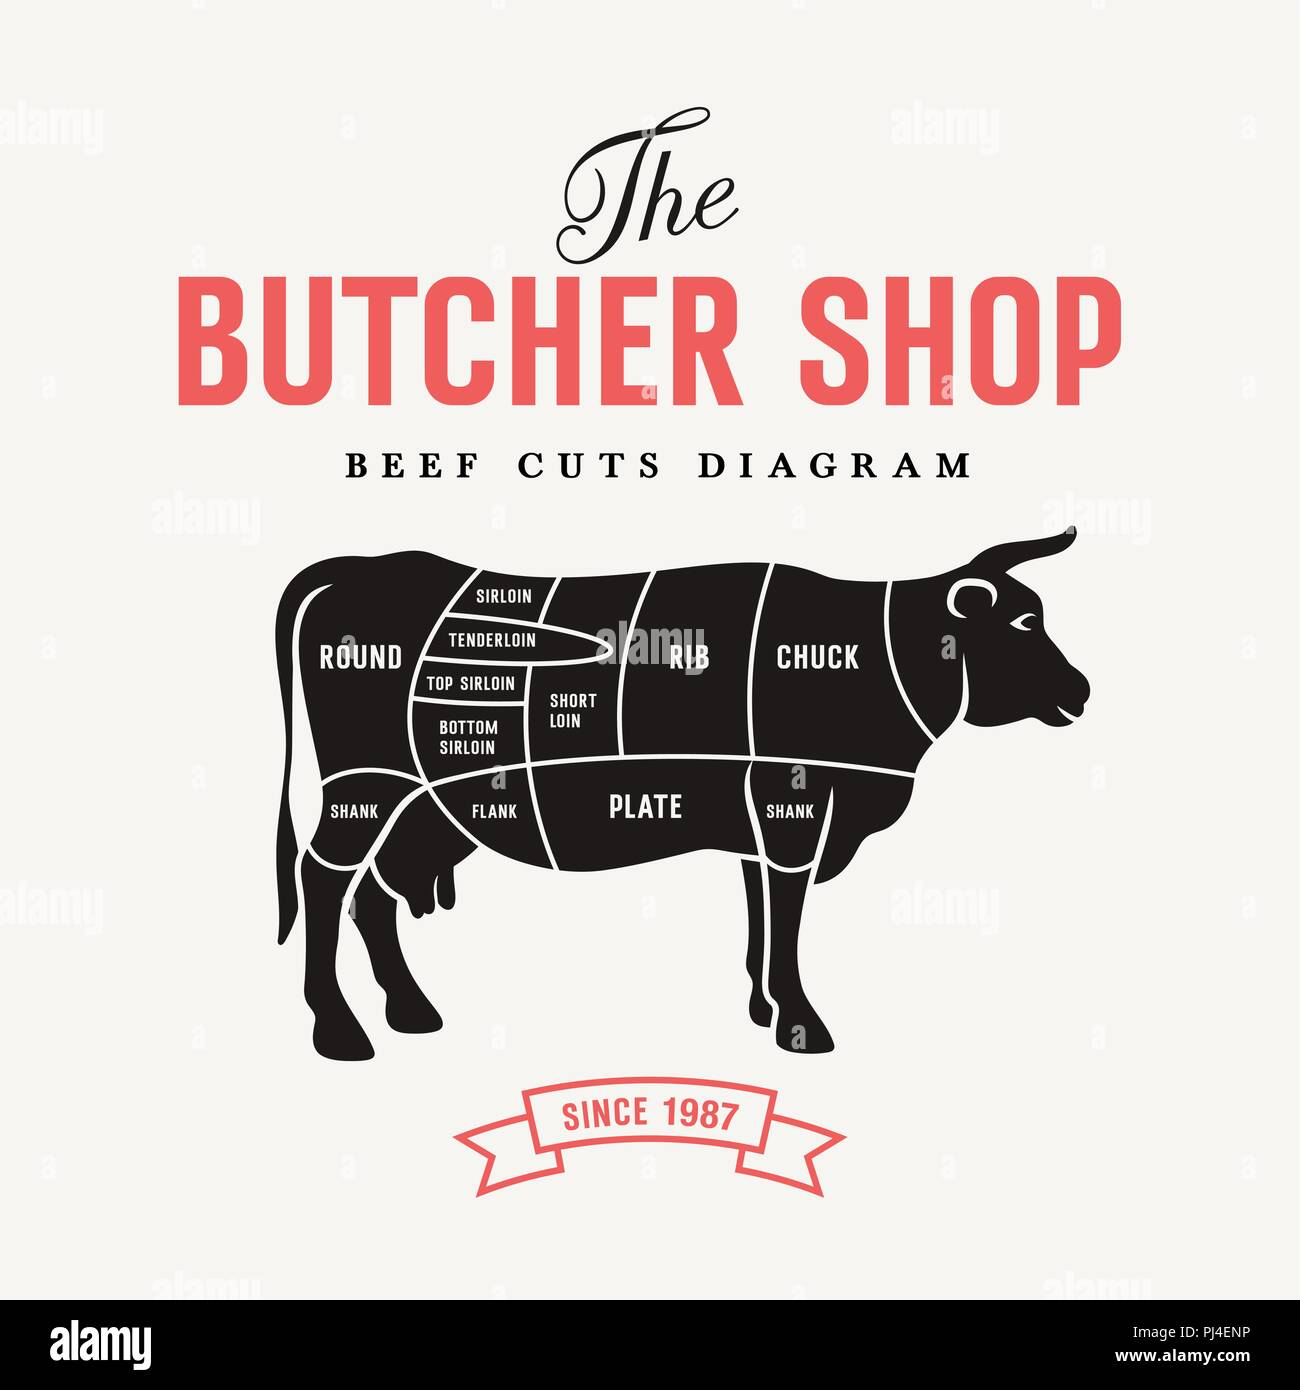 hight resolution of beef cuts diagram vector illustration for butcher shop and farm market stock image